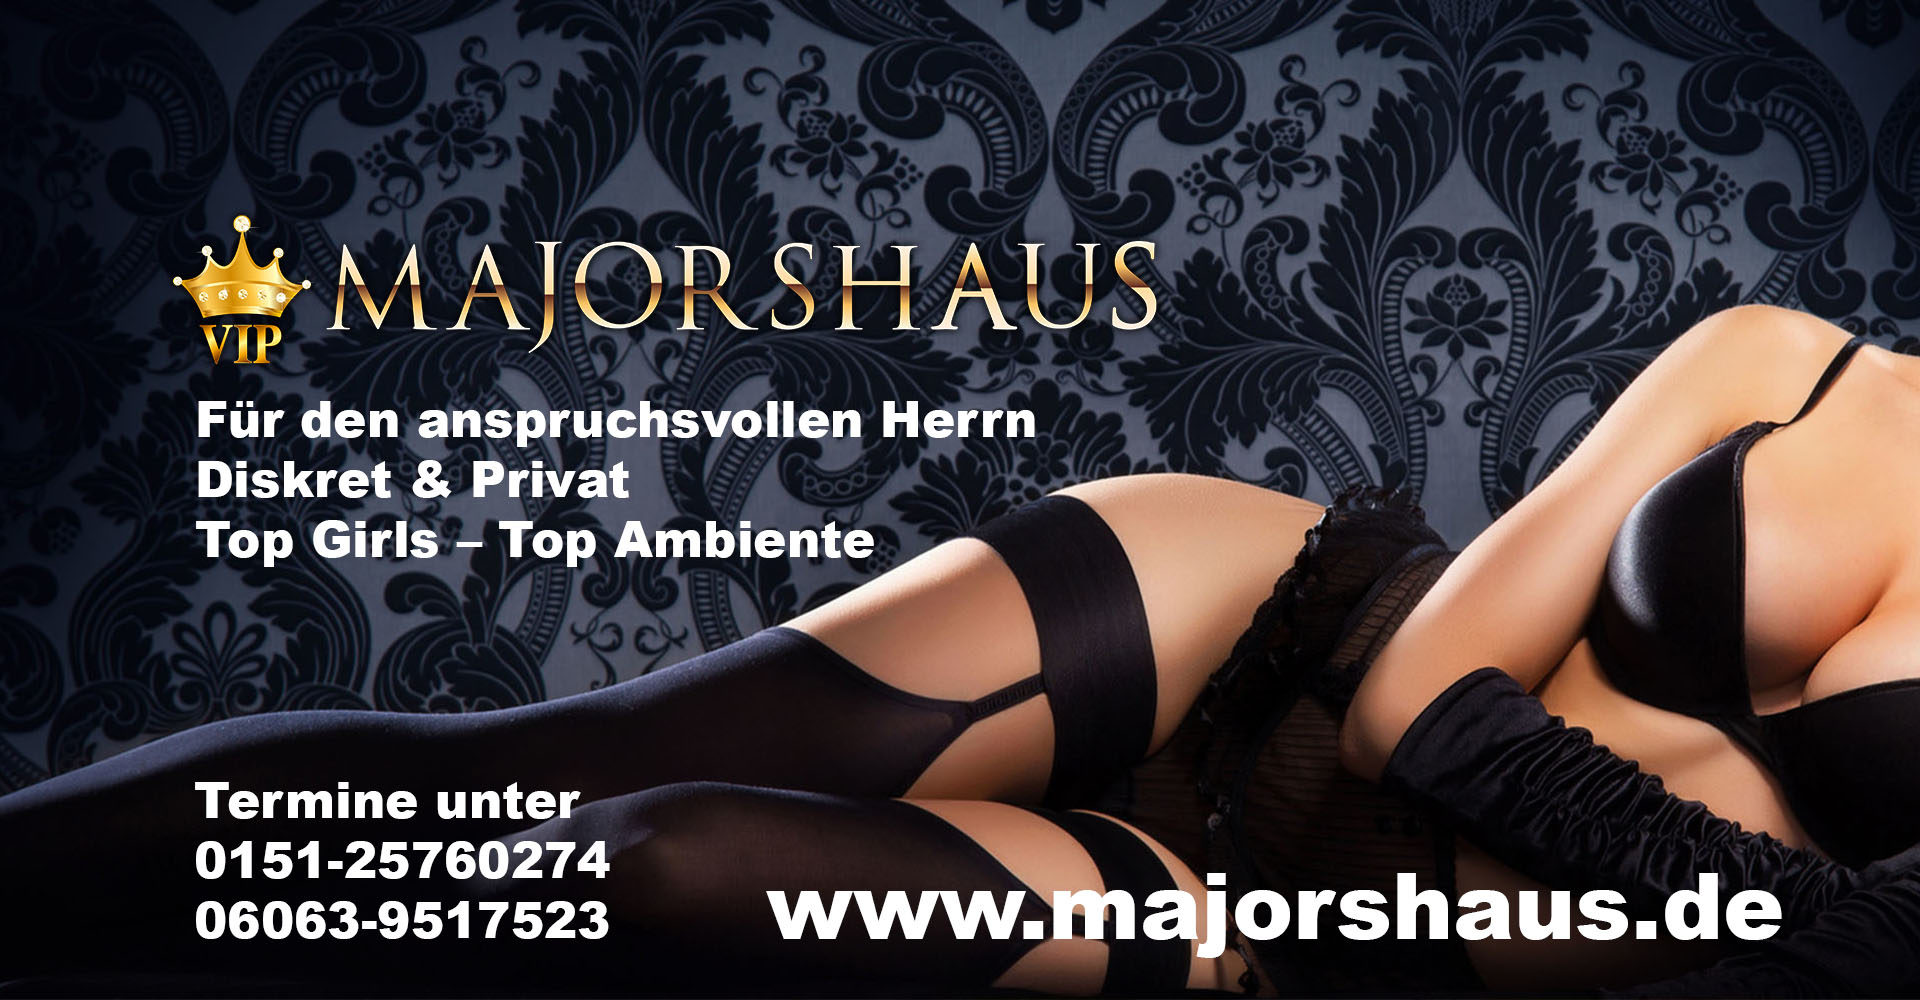 swinger club klagenfurt shemale bordell berlin